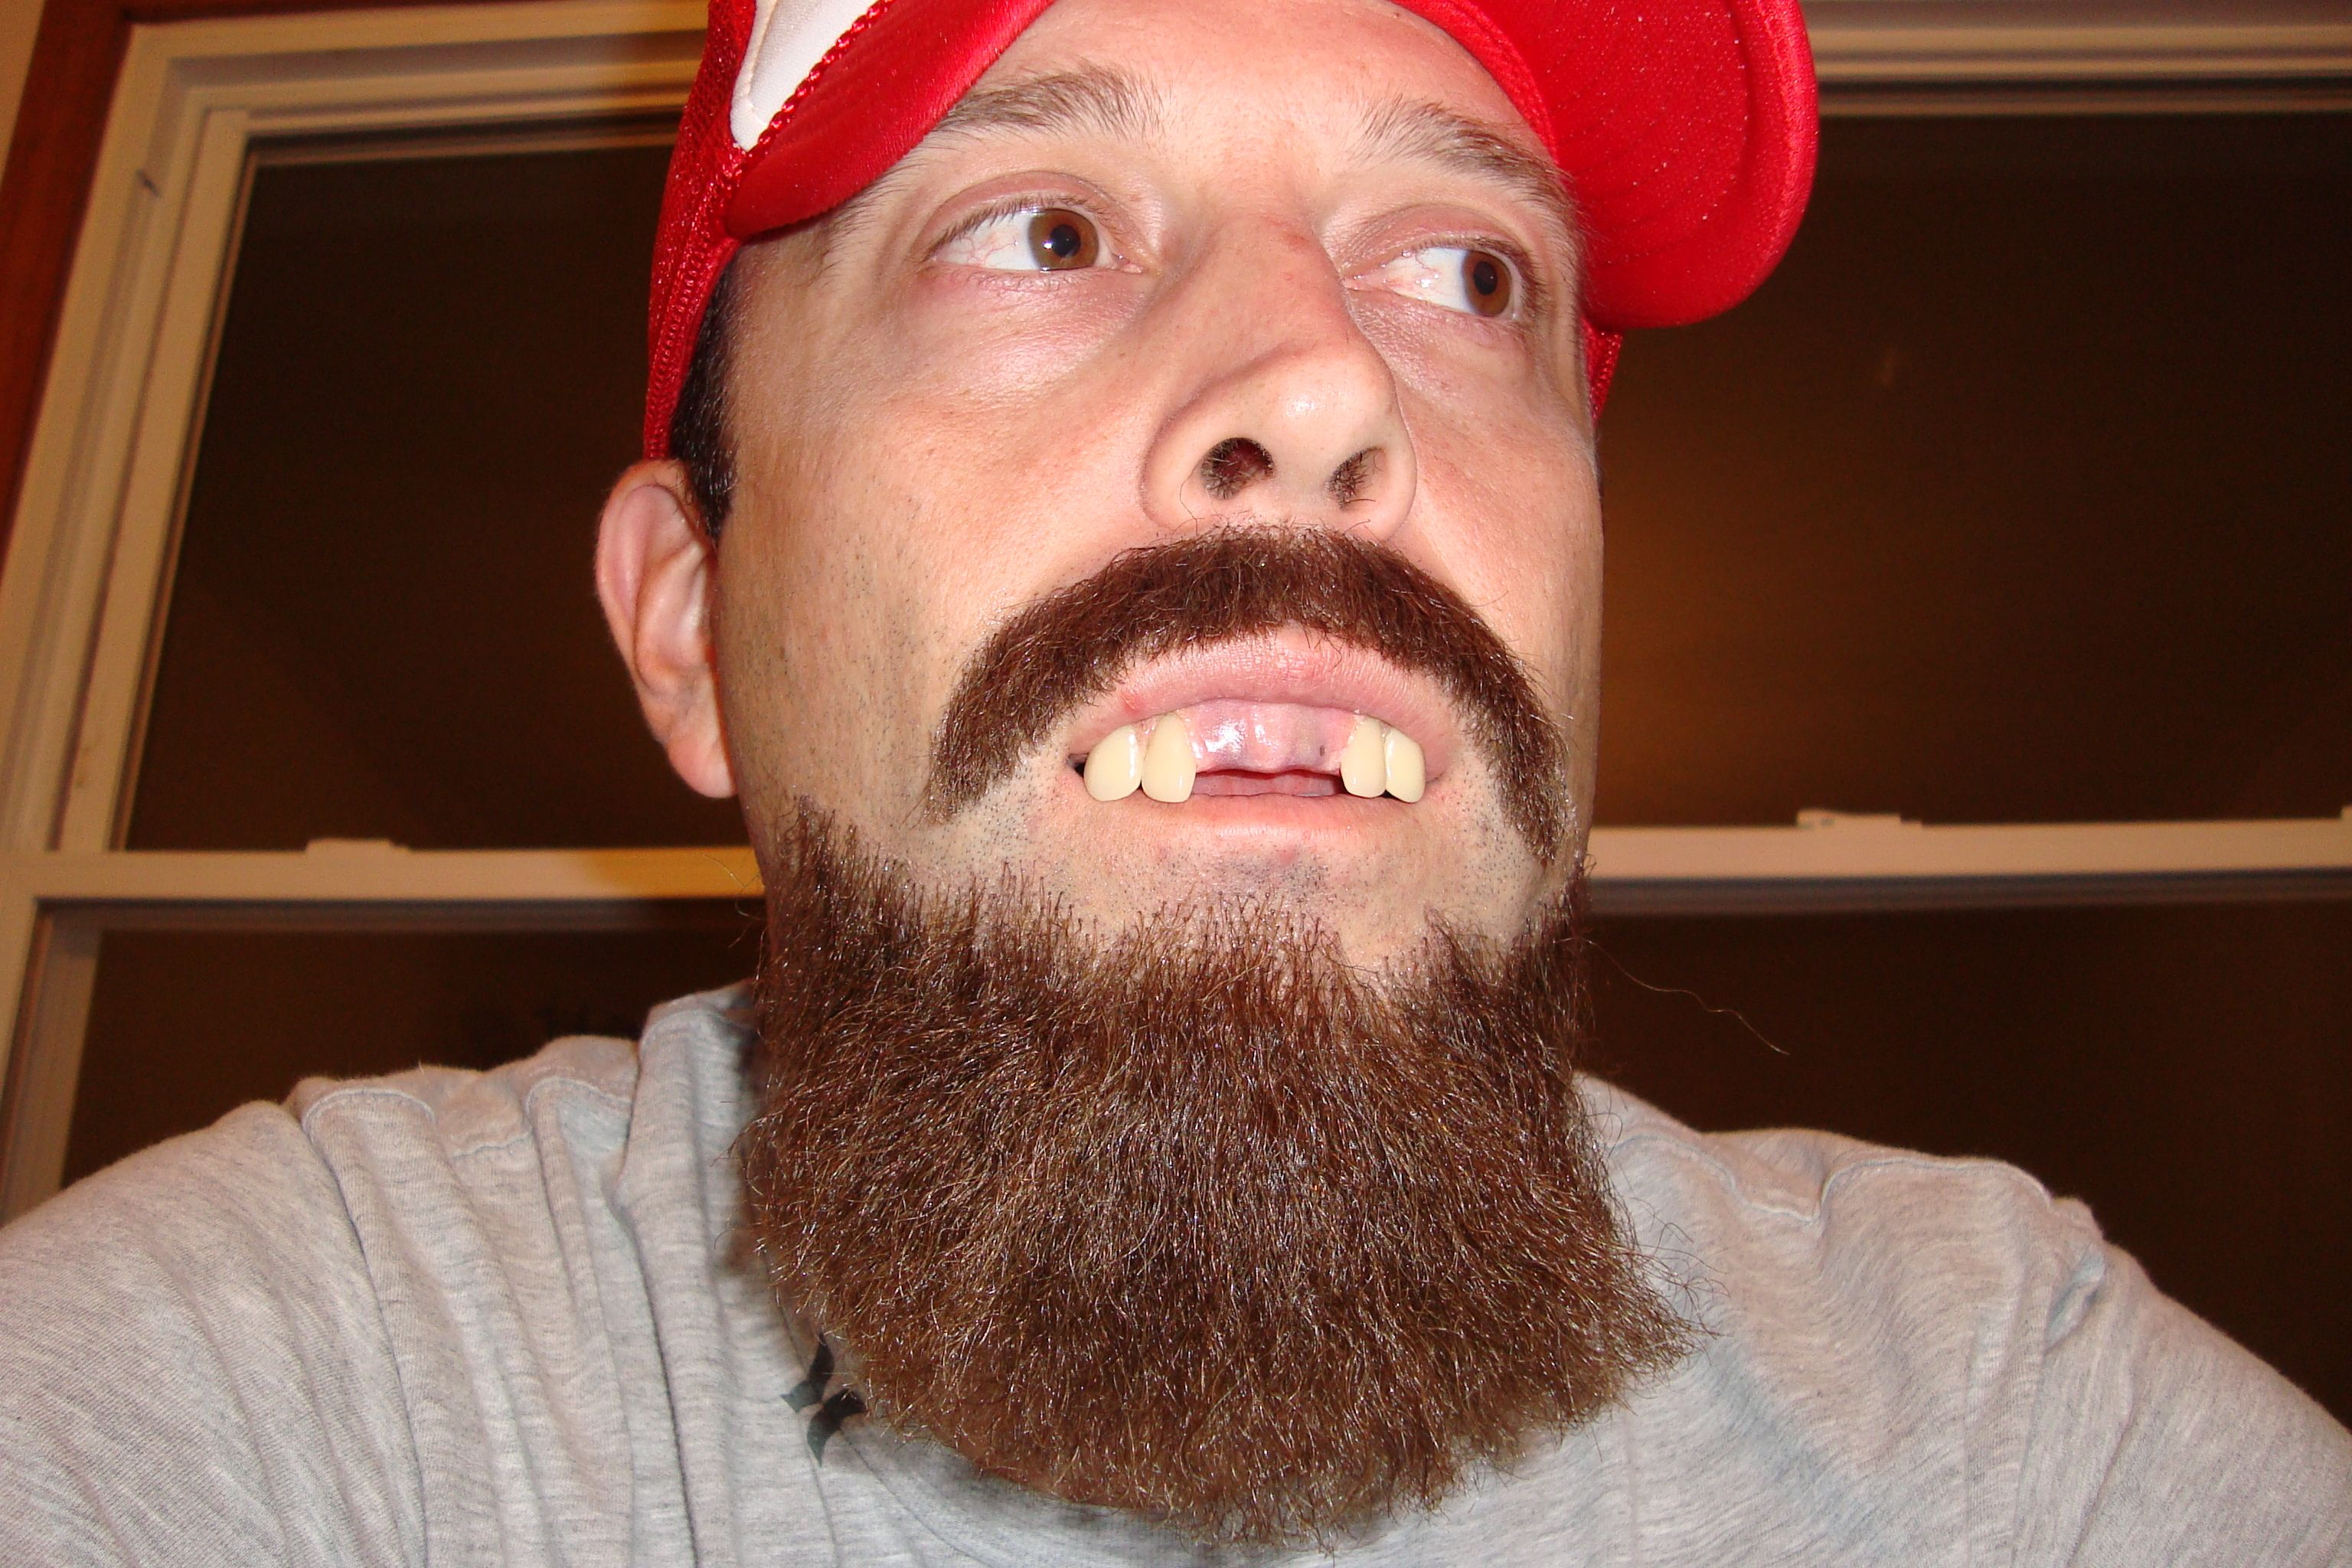 A Little Fun With Facial Hair And Some Fake Teeth I Made With